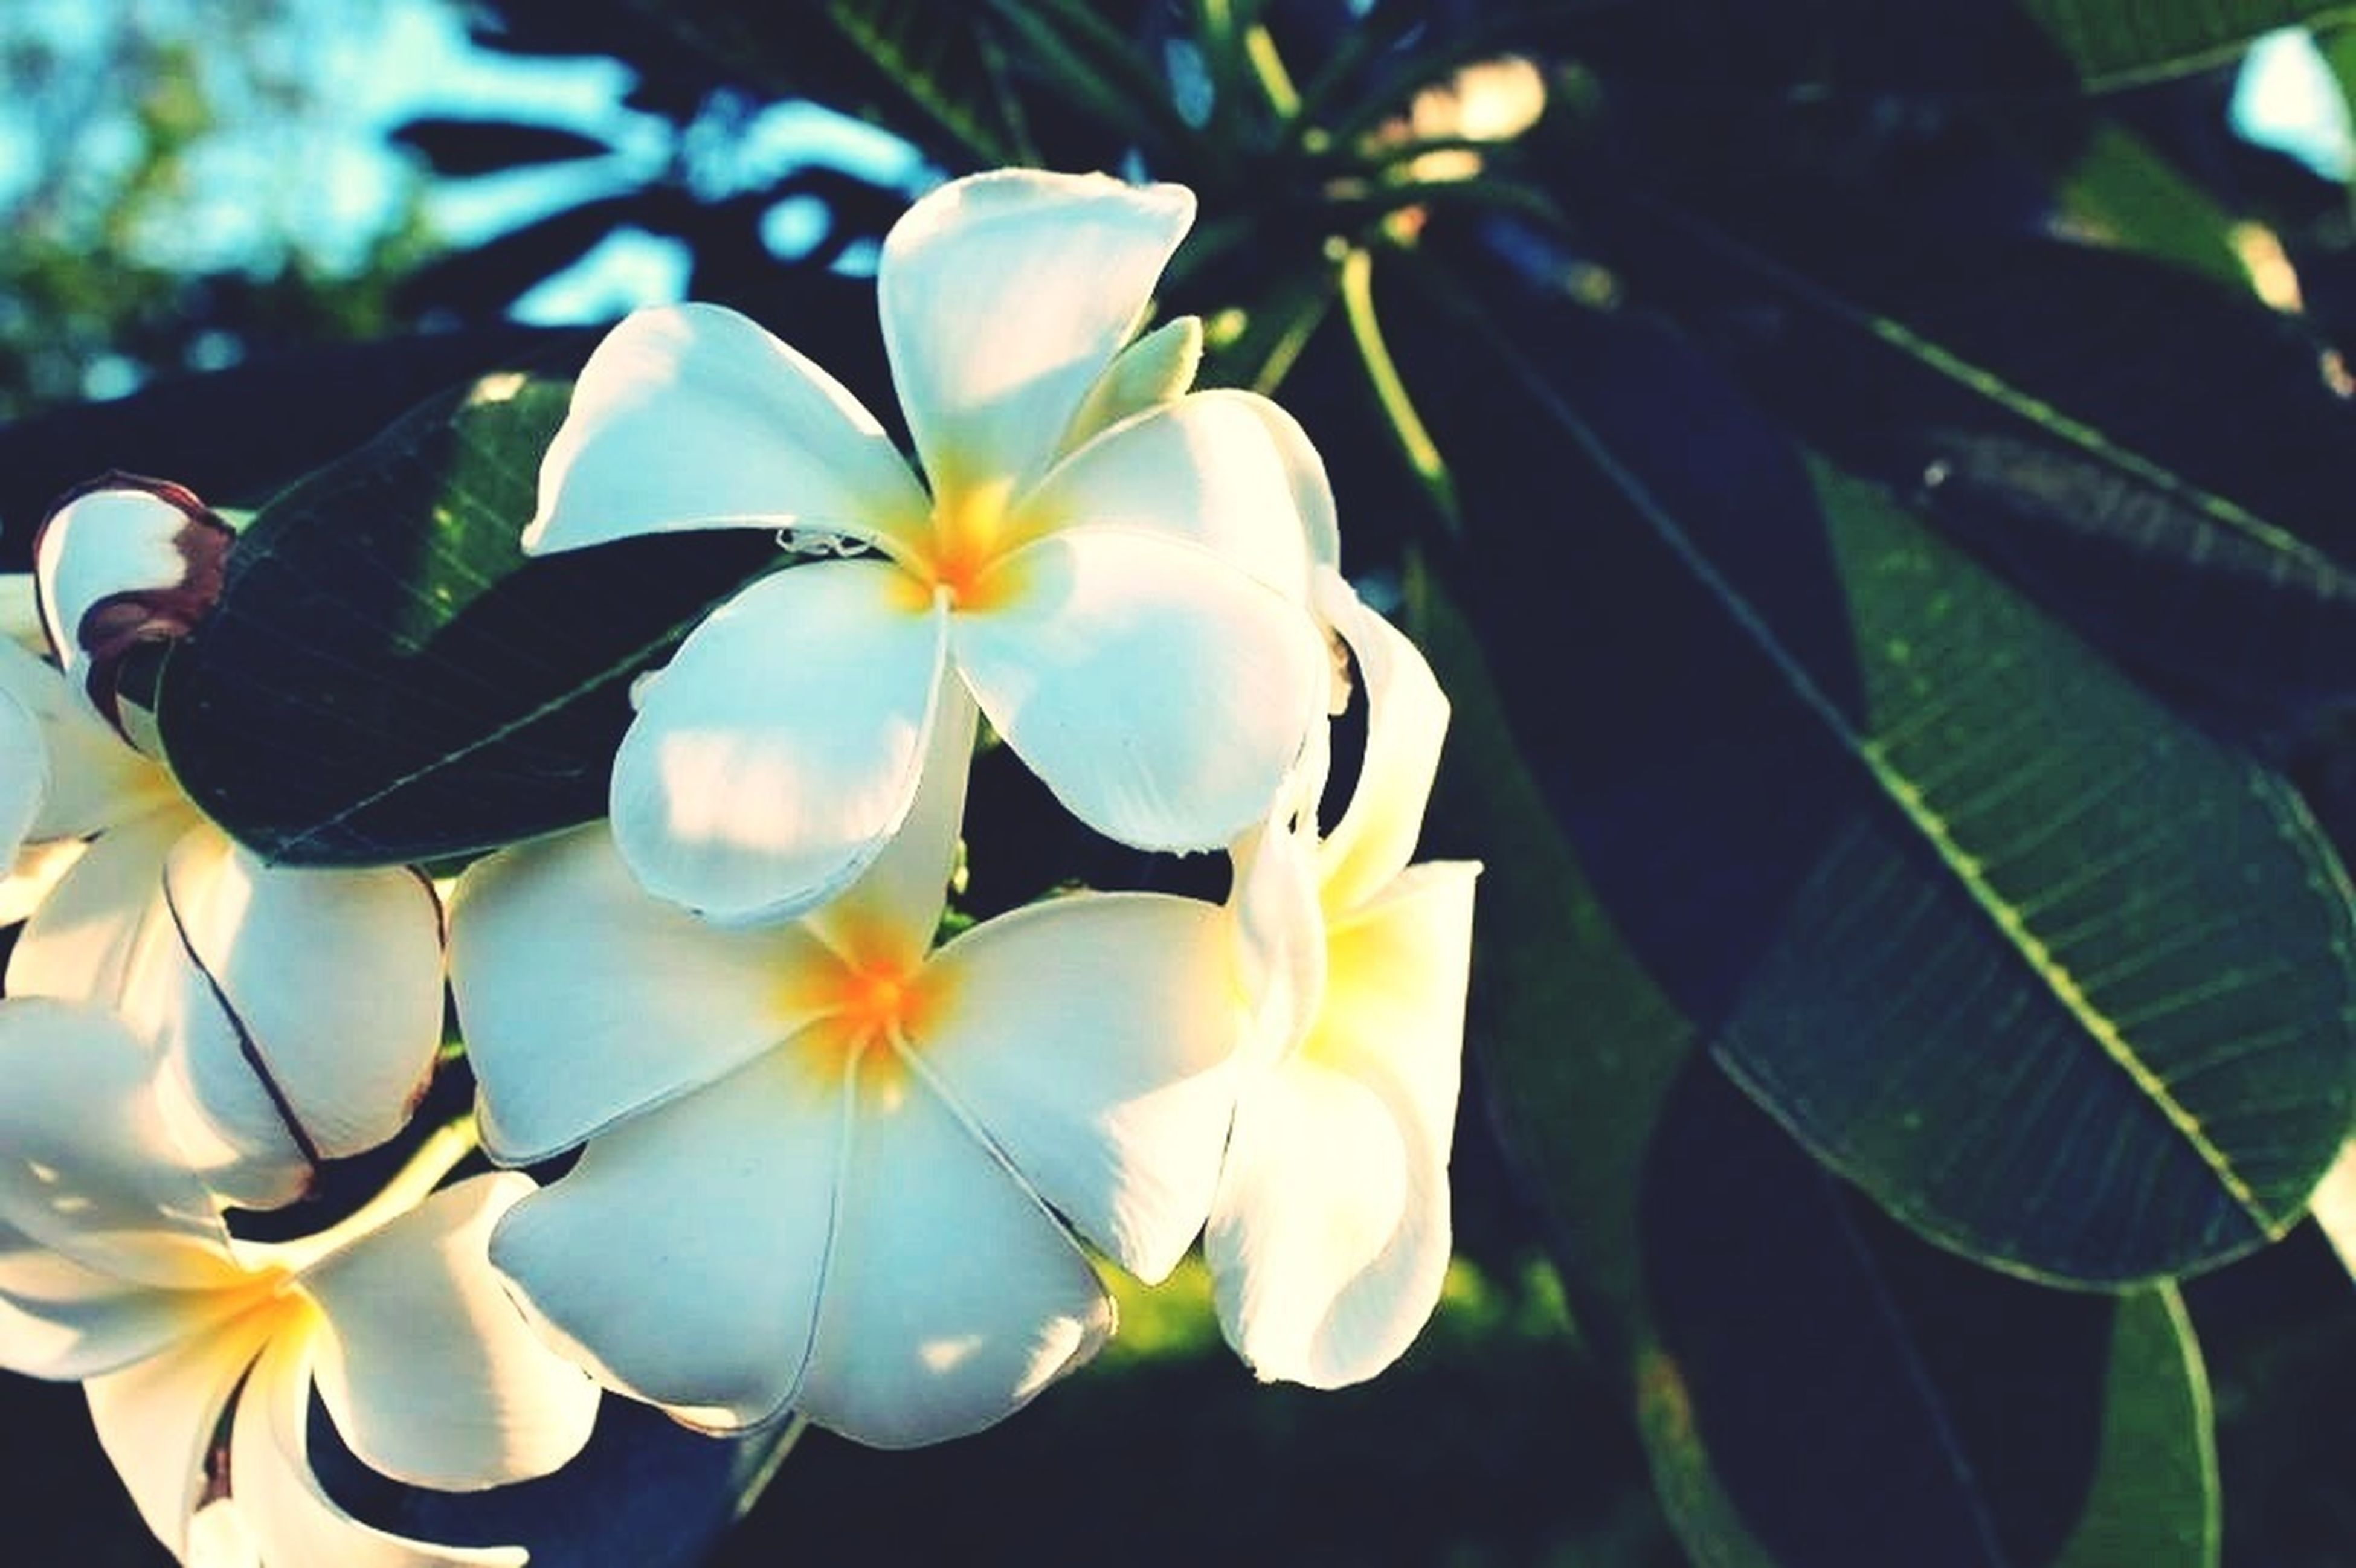 flower, petal, freshness, fragility, growth, flower head, beauty in nature, leaf, blooming, nature, close-up, plant, white color, in bloom, focus on foreground, blossom, park - man made space, outdoors, day, pollen